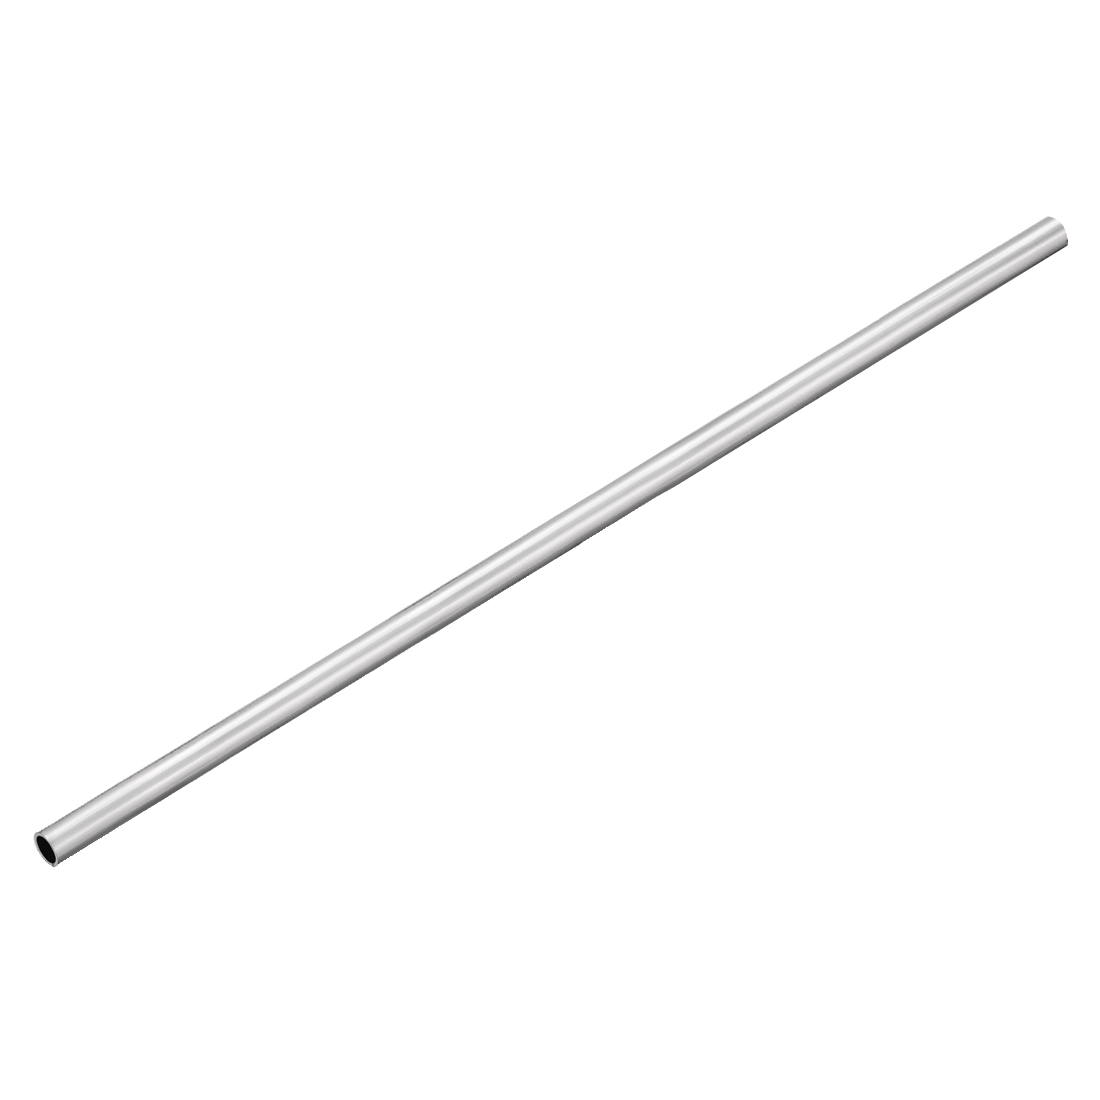 Uxcell 1pcs 6063 Seamless Aluminum Round Straight Tubing 300mm Length 10mm 11mm OD 4mm 5mm 6mm 7mm 8mm 9mm ID